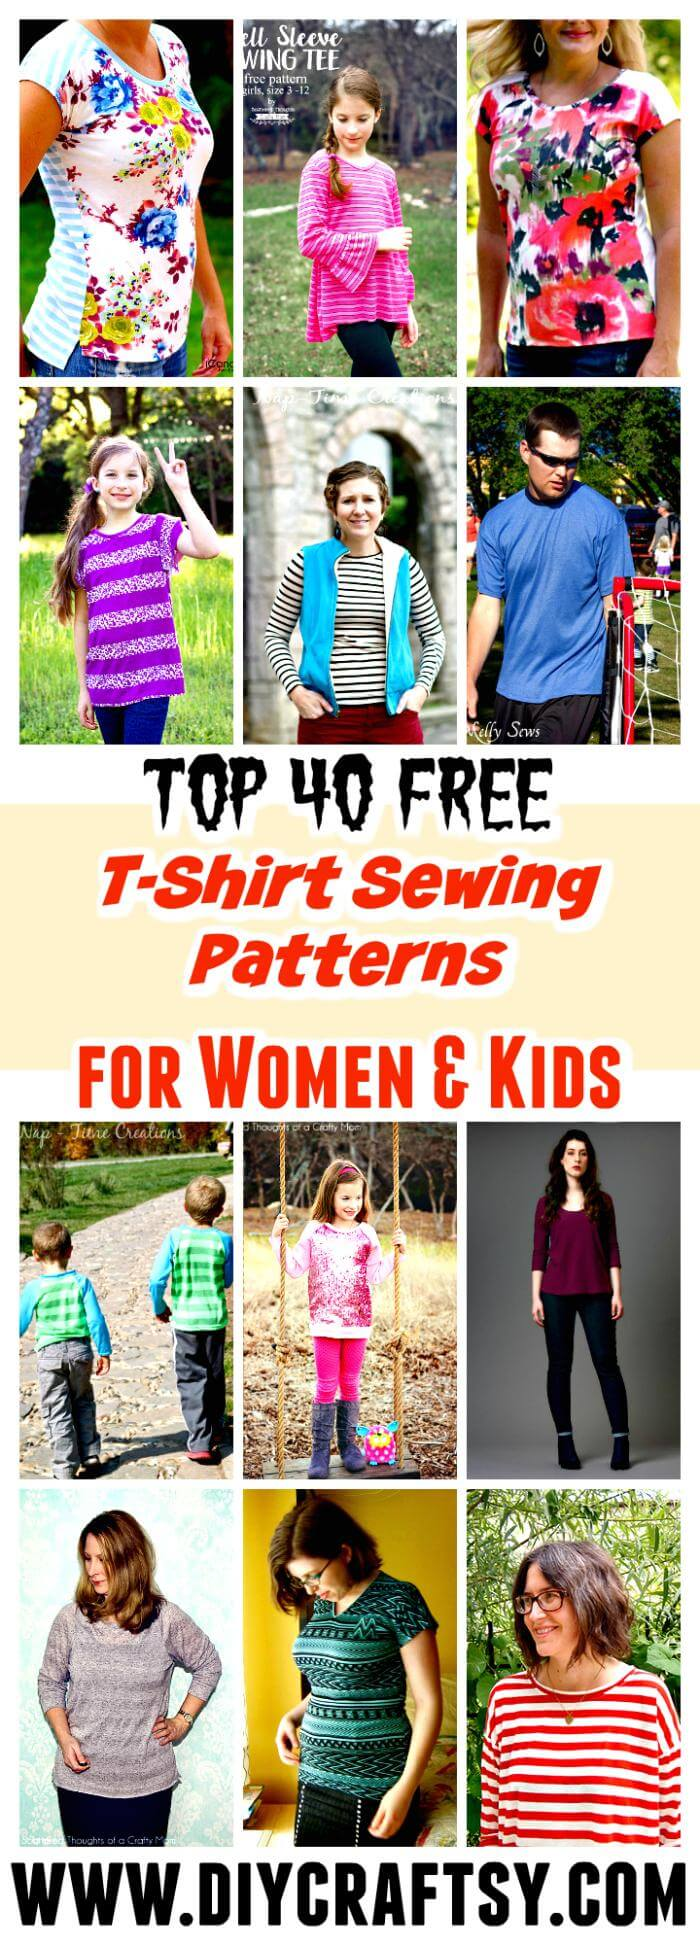 Top 40 Free T-Shirt Sewing Patterns for Women & Kids